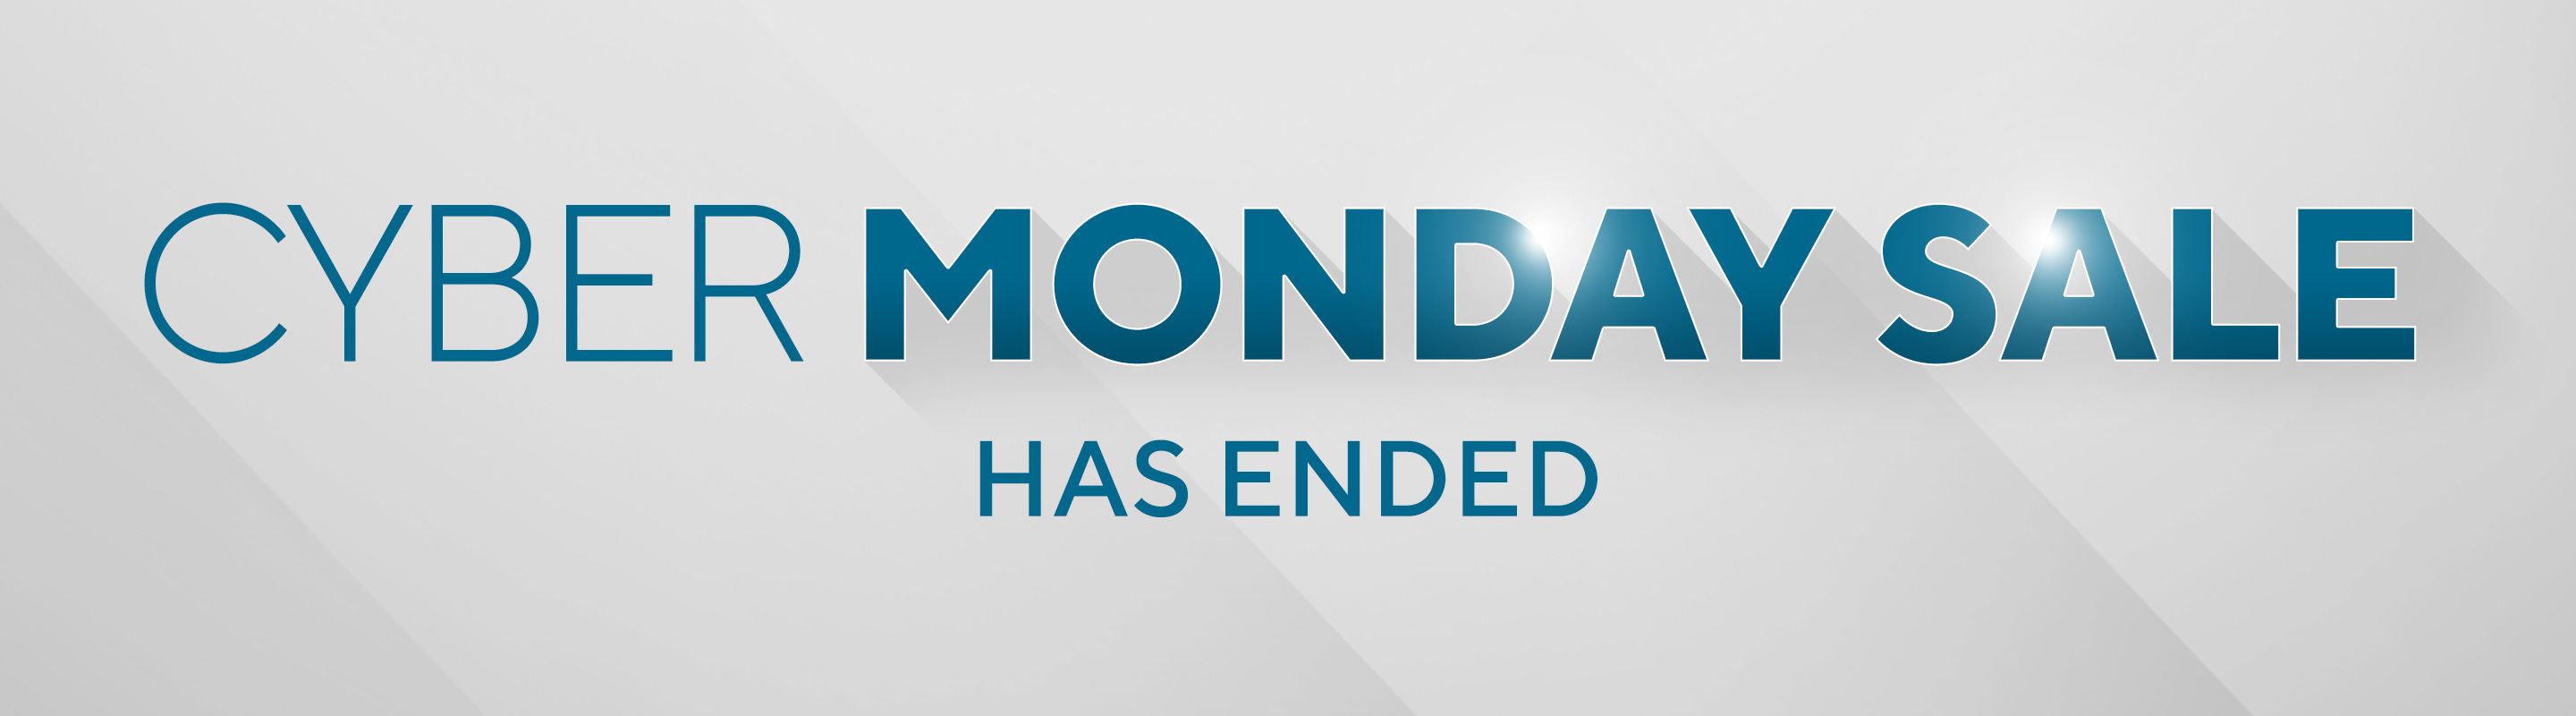 Cyber Monday Sale has Ended